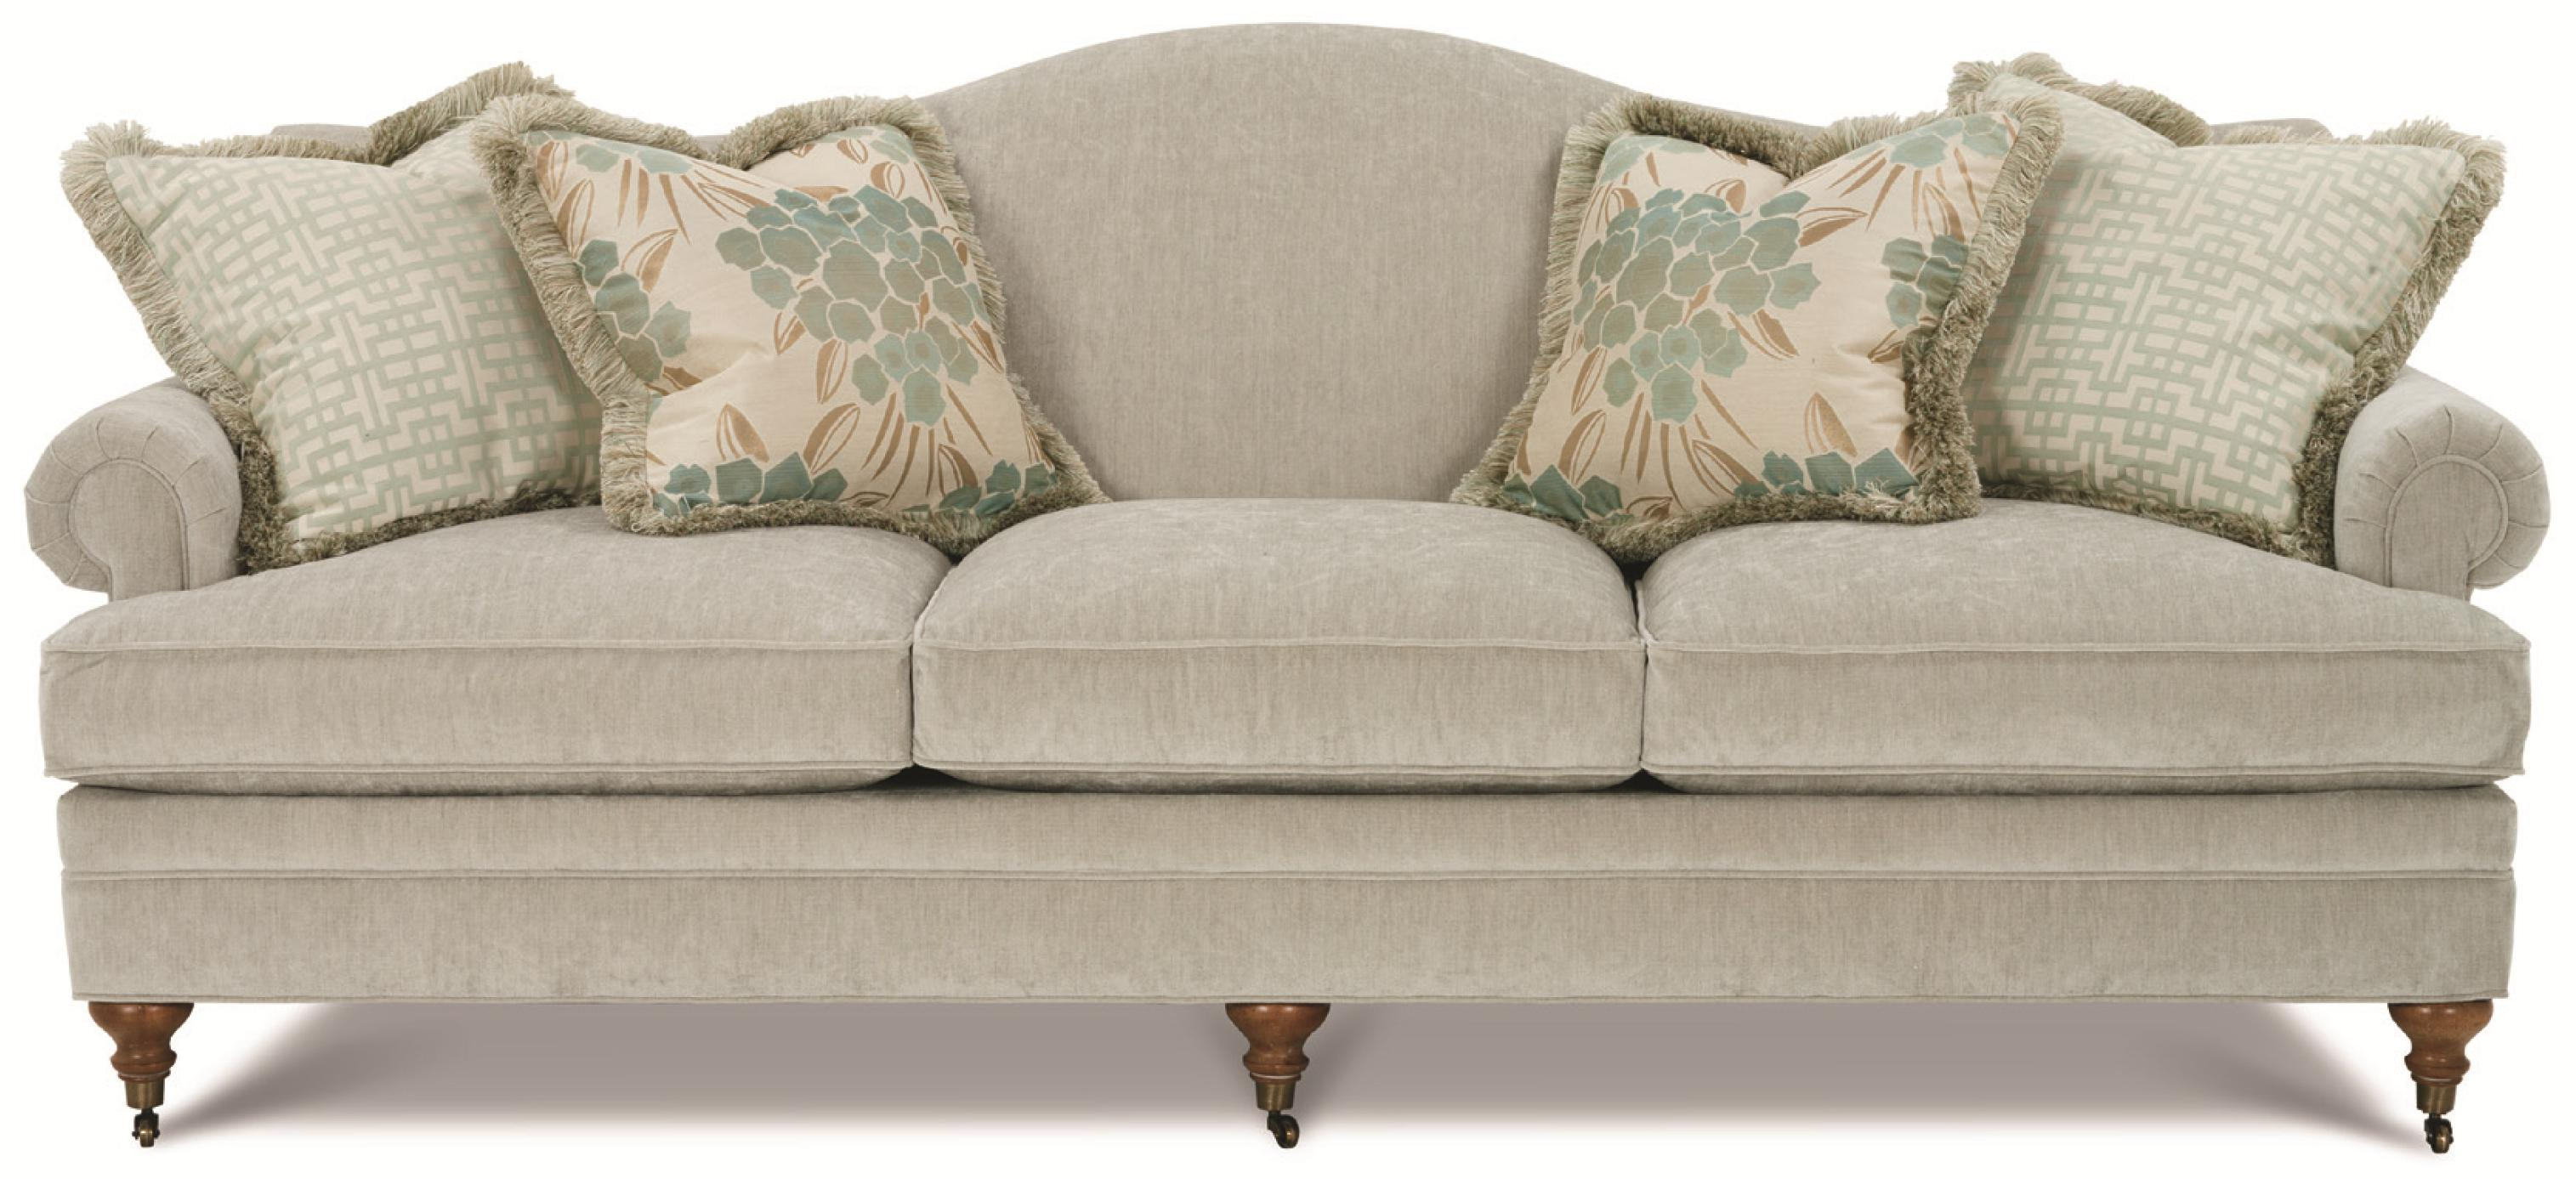 Amazing Kensington Collection   Brompton Traditional Camel Back Sofa With Castered  Feet By Clayton Marcus